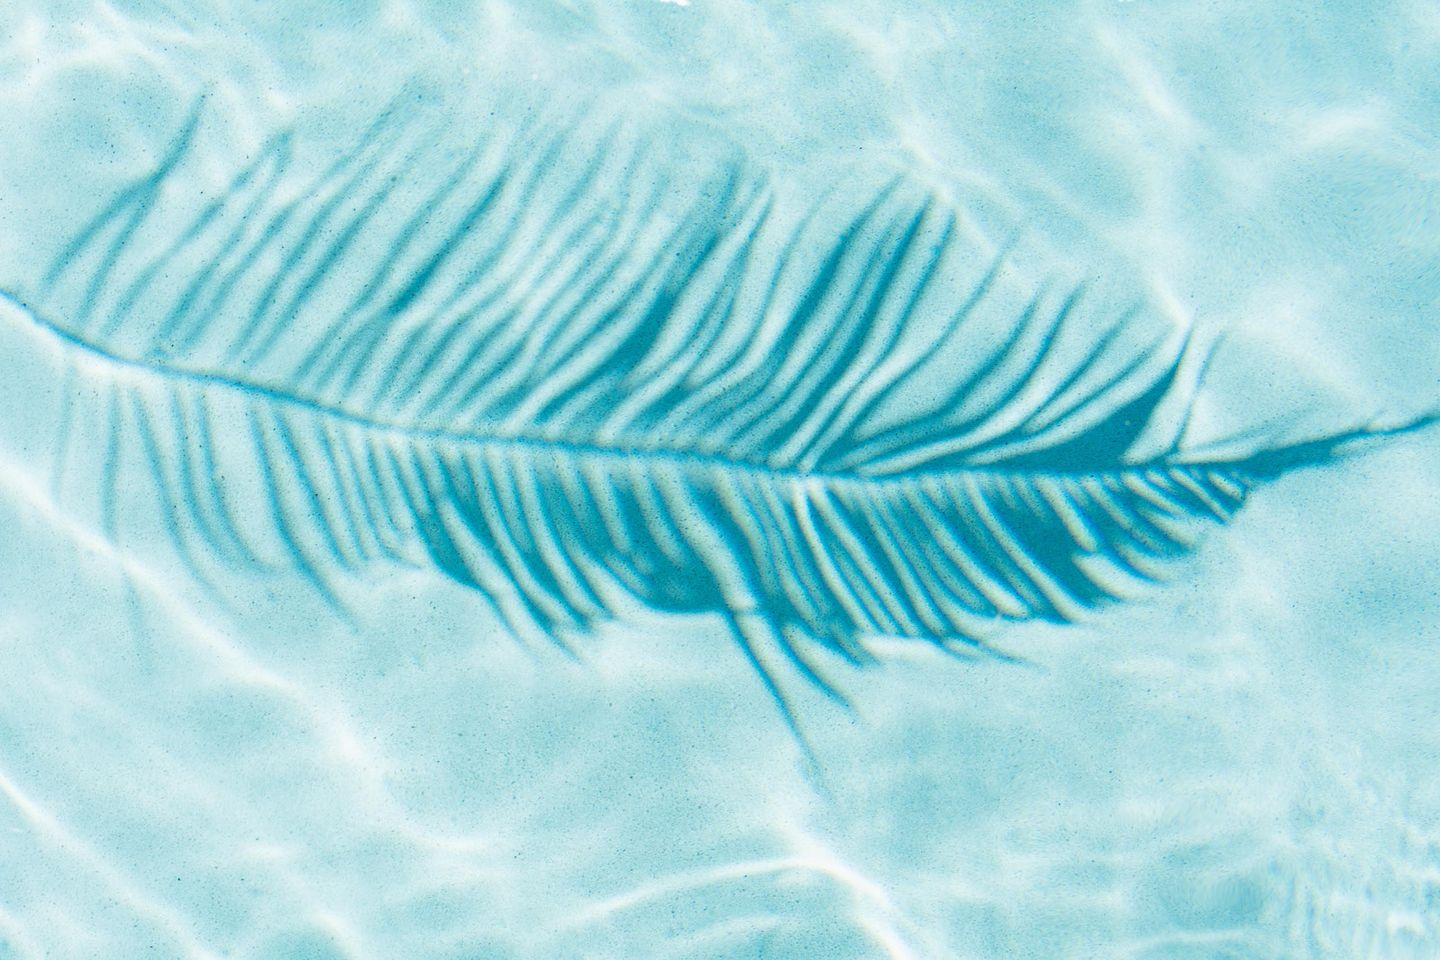 Abstract palm leaf